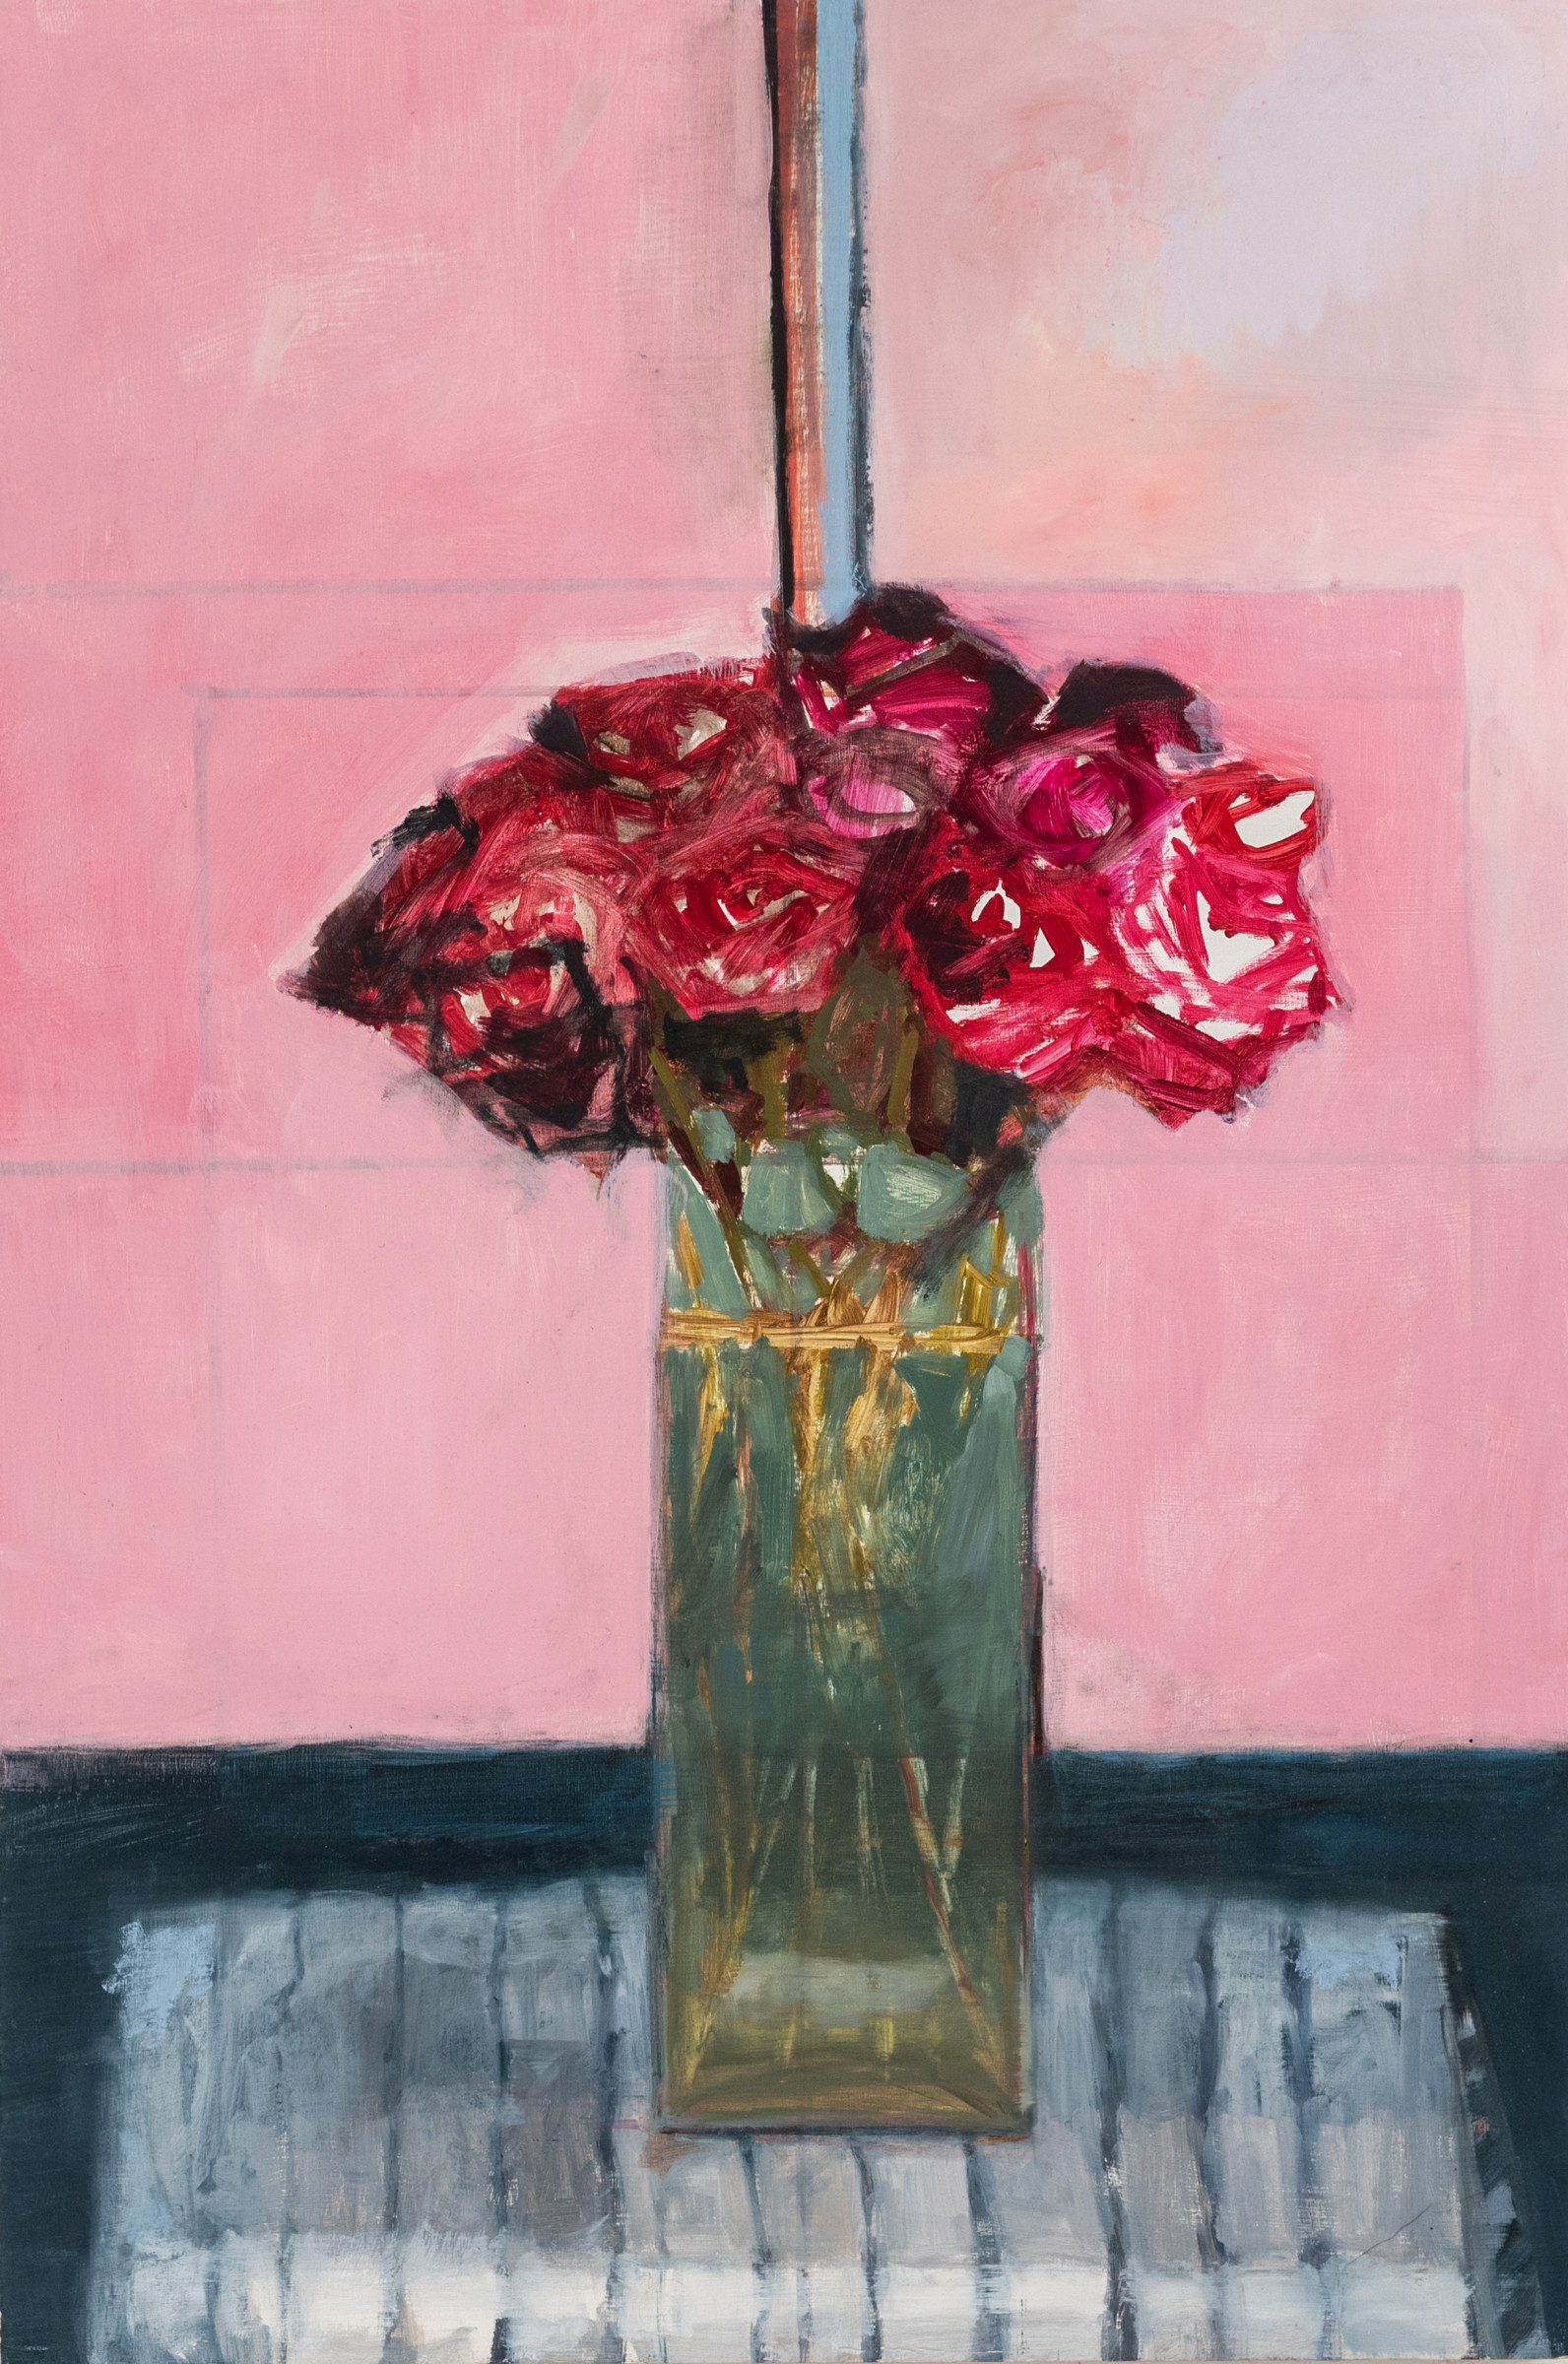 """<span class=""""link fancybox-details-link""""><a href=""""/artists/56-hadas-tal/works/727-hadas-tal-red-roses/"""">View Detail Page</a></span><div class=""""artist""""><strong>Hadas Tal</strong></div> <div class=""""title""""><em>Red Roses</em></div> <div class=""""medium"""">Oil on Wood Panel</div> <div class=""""dimensions"""">30 x 20 inches</div>"""